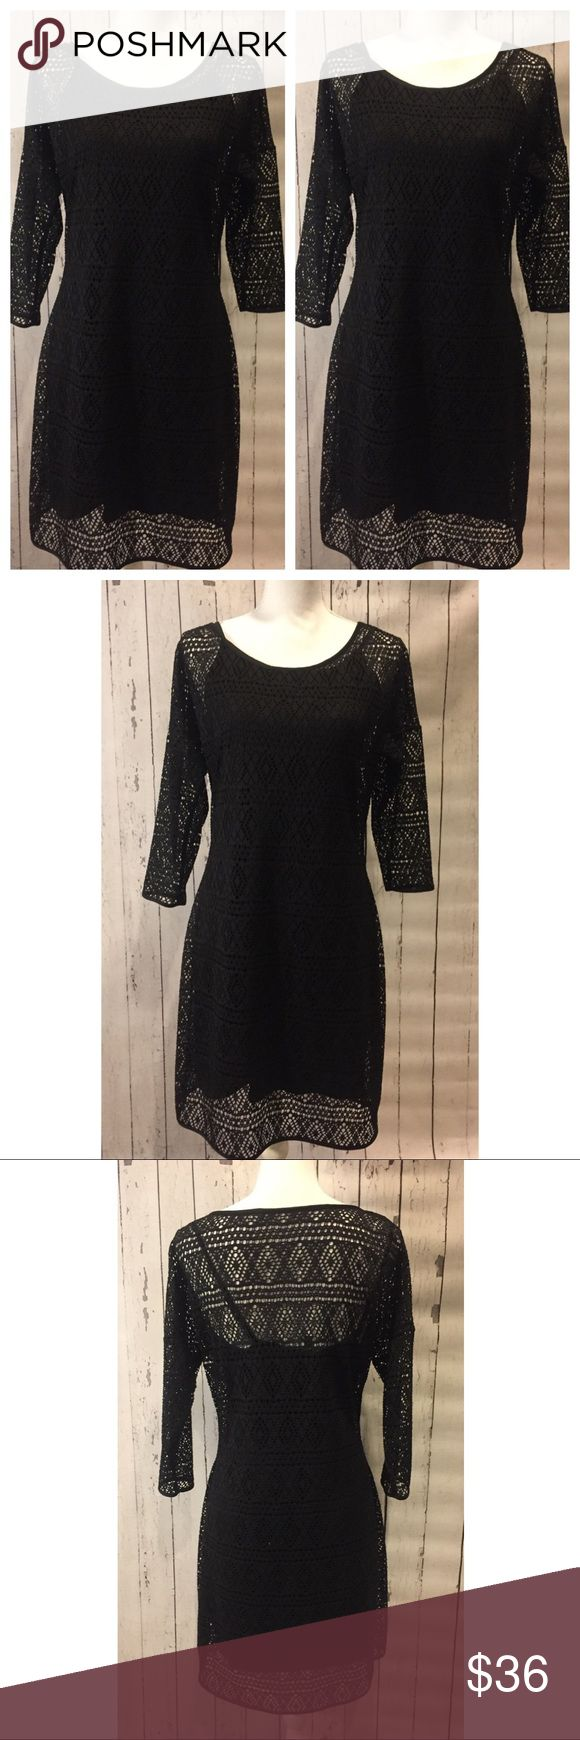 Express Aztec Crochet Overlay Dress NWOT long sleeve dress is two layers of sexy! Outer layer is an Aztec / diamond crochet design with long sleeves, and inner layer is a plain black tank dress! Shoulder to hem 36 inches. Express Dresses Midi